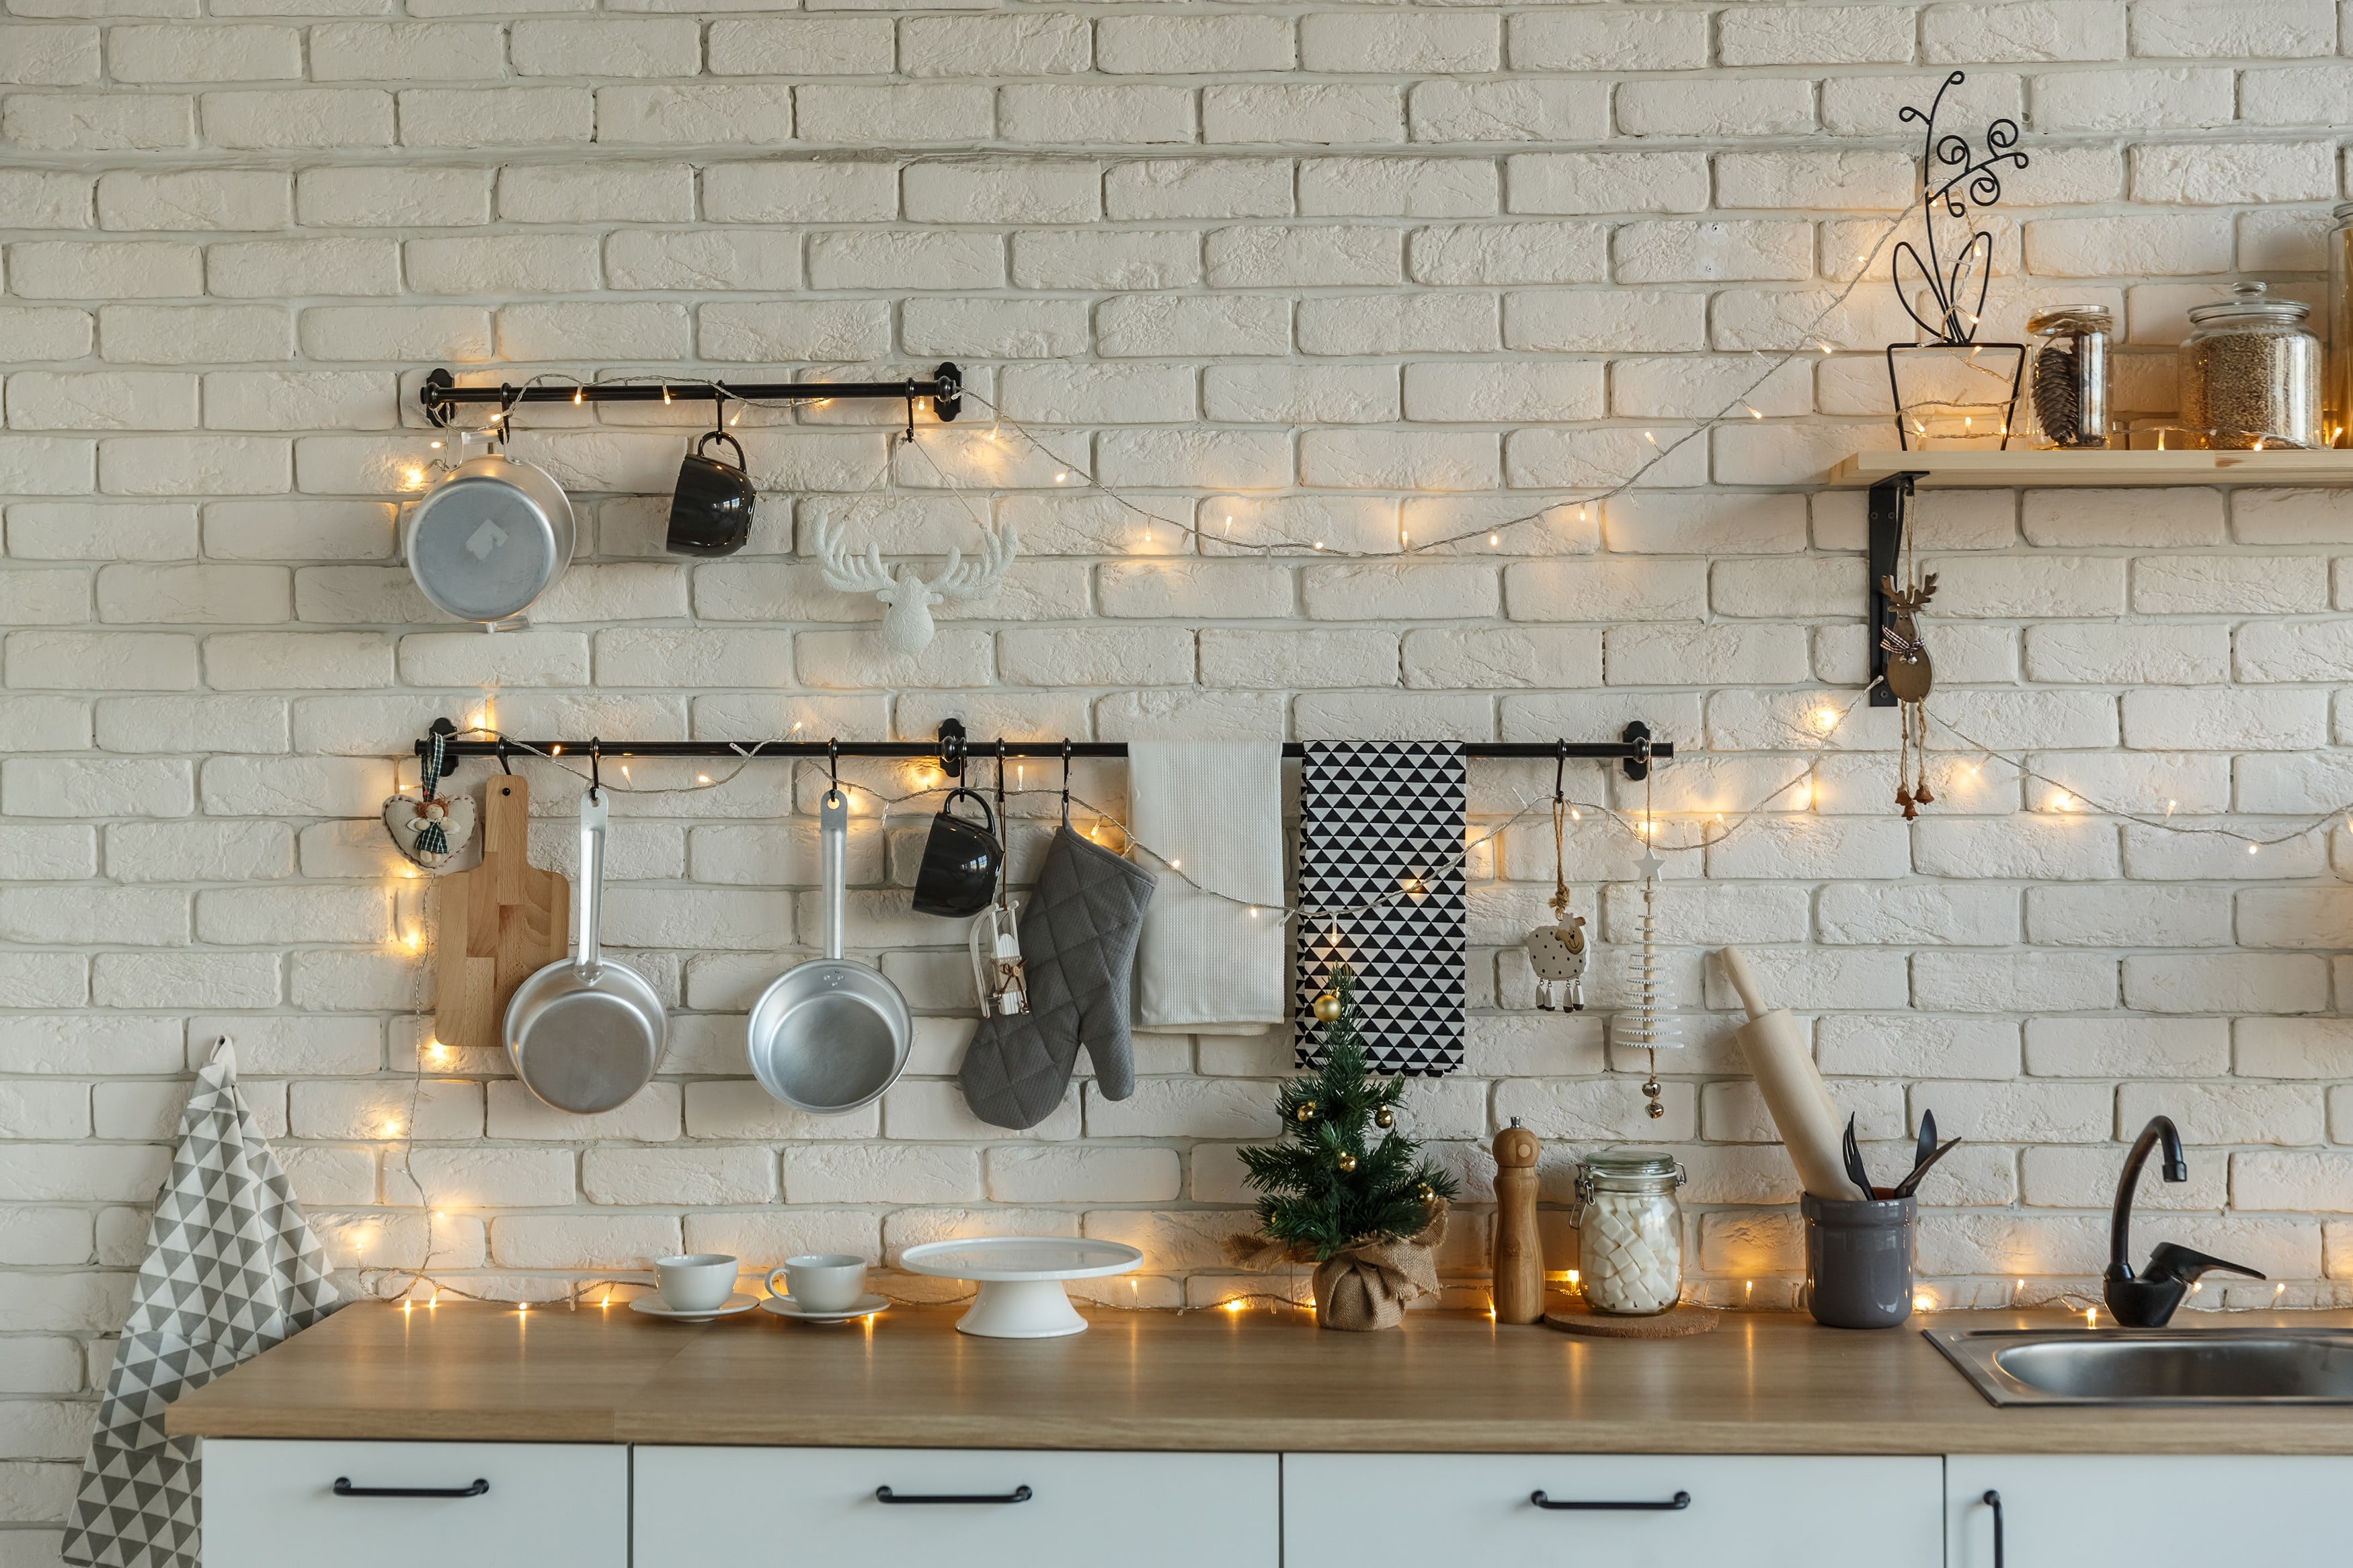 interior-light-kitchen-with-christmas-decor-and-3RNZDFG-min